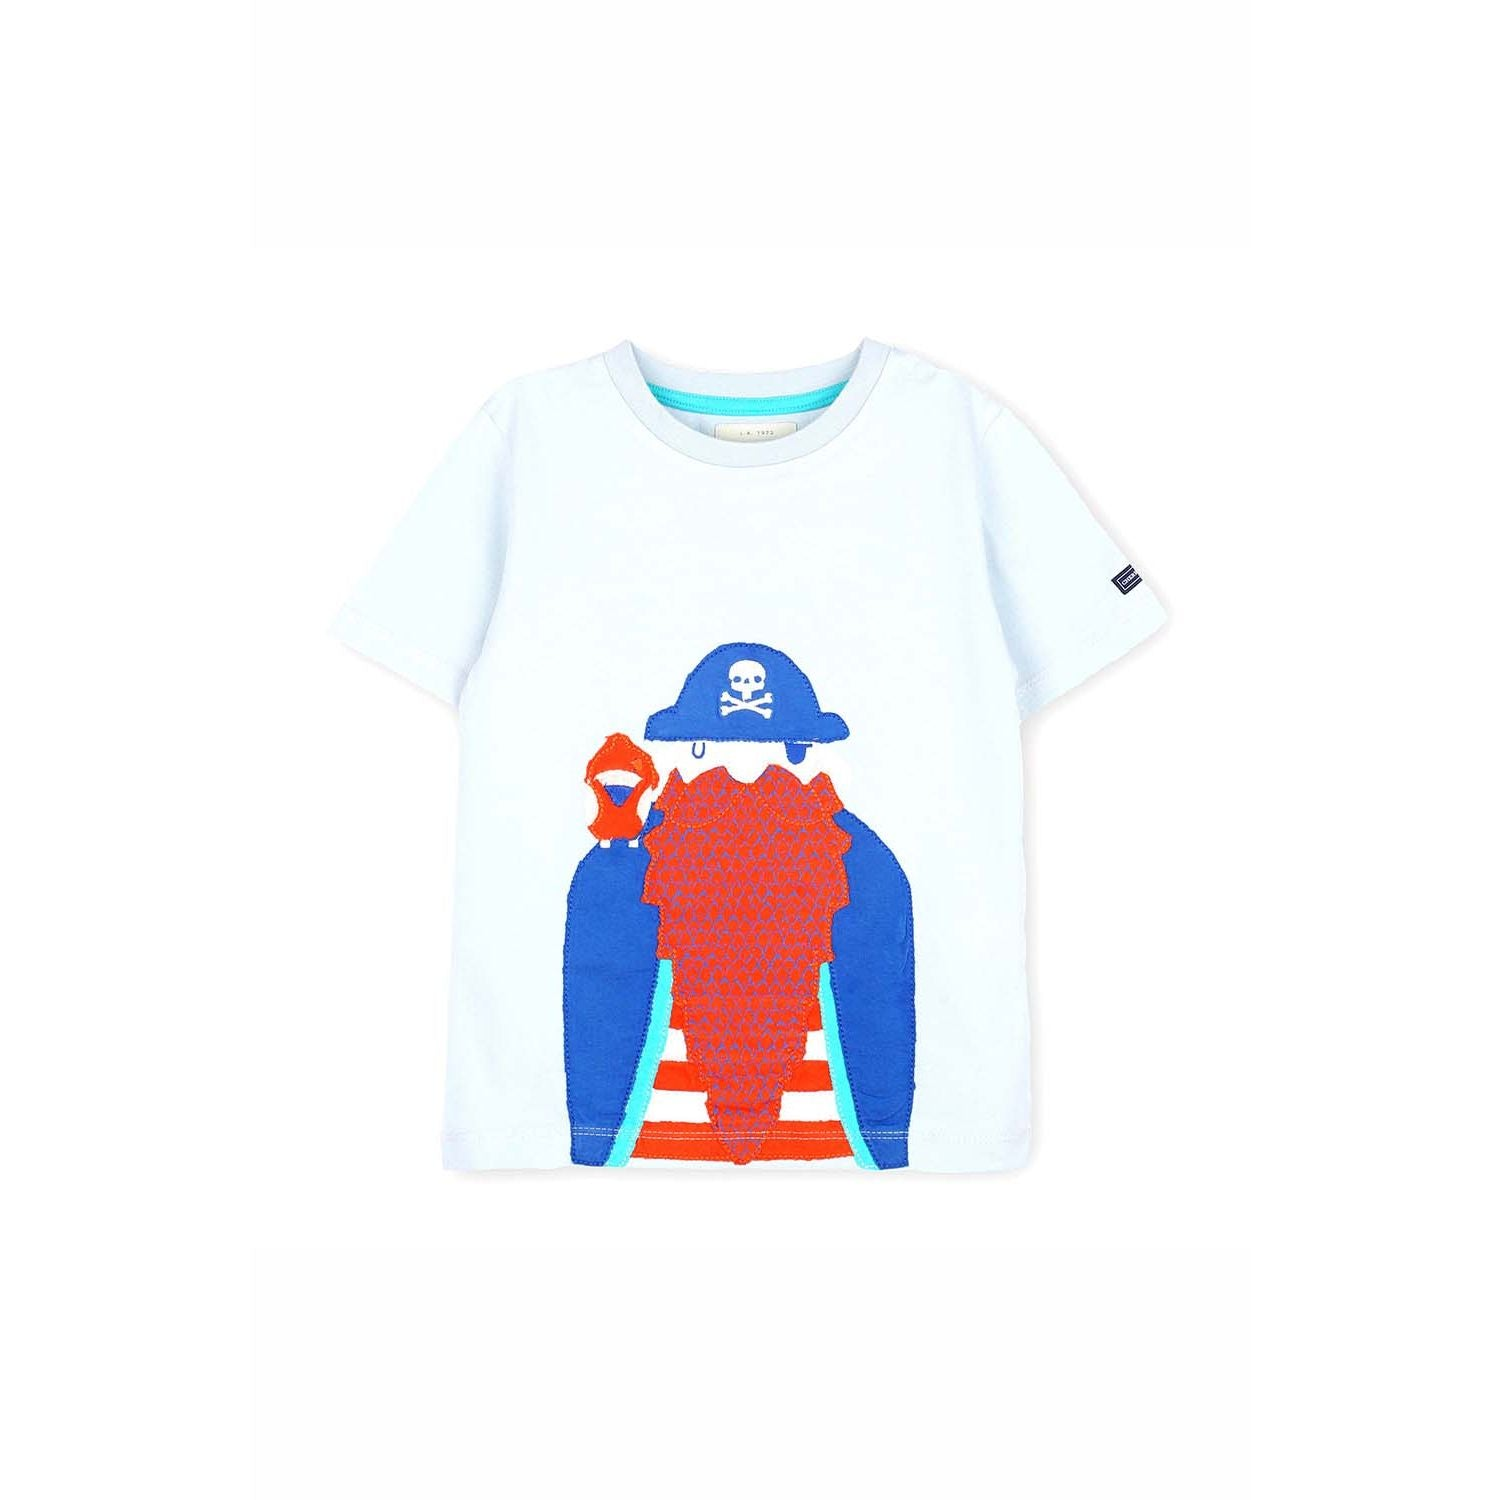 Bio Washed Cotton Blue Red With Orange T Shirt for Boys